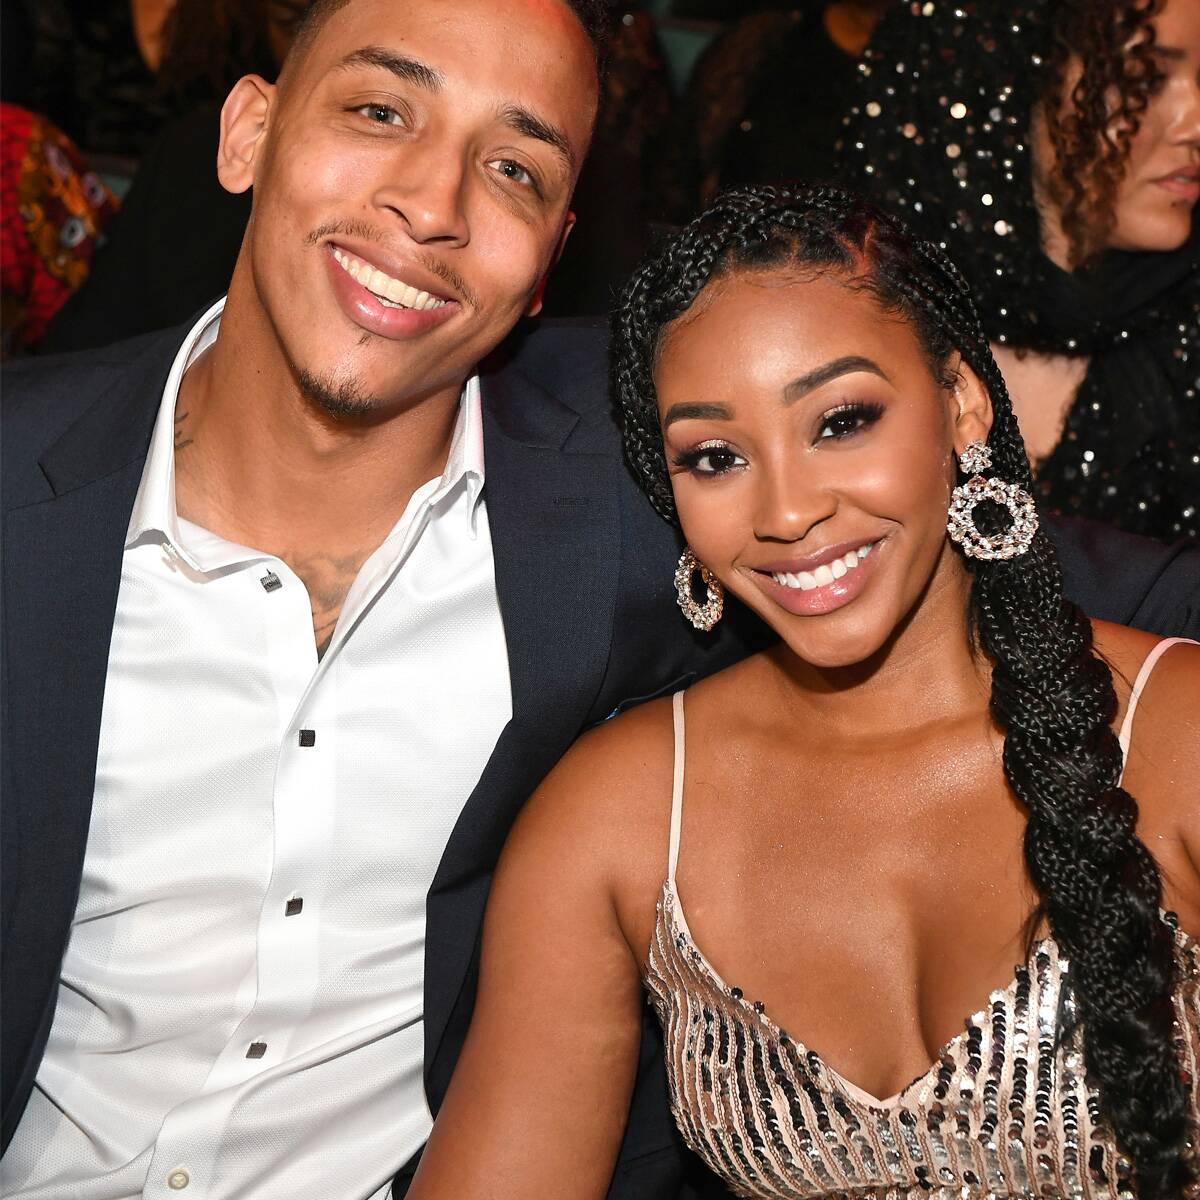 Why Jasmine Luv and Corey Barrett Are Proud to Share Their Love Story